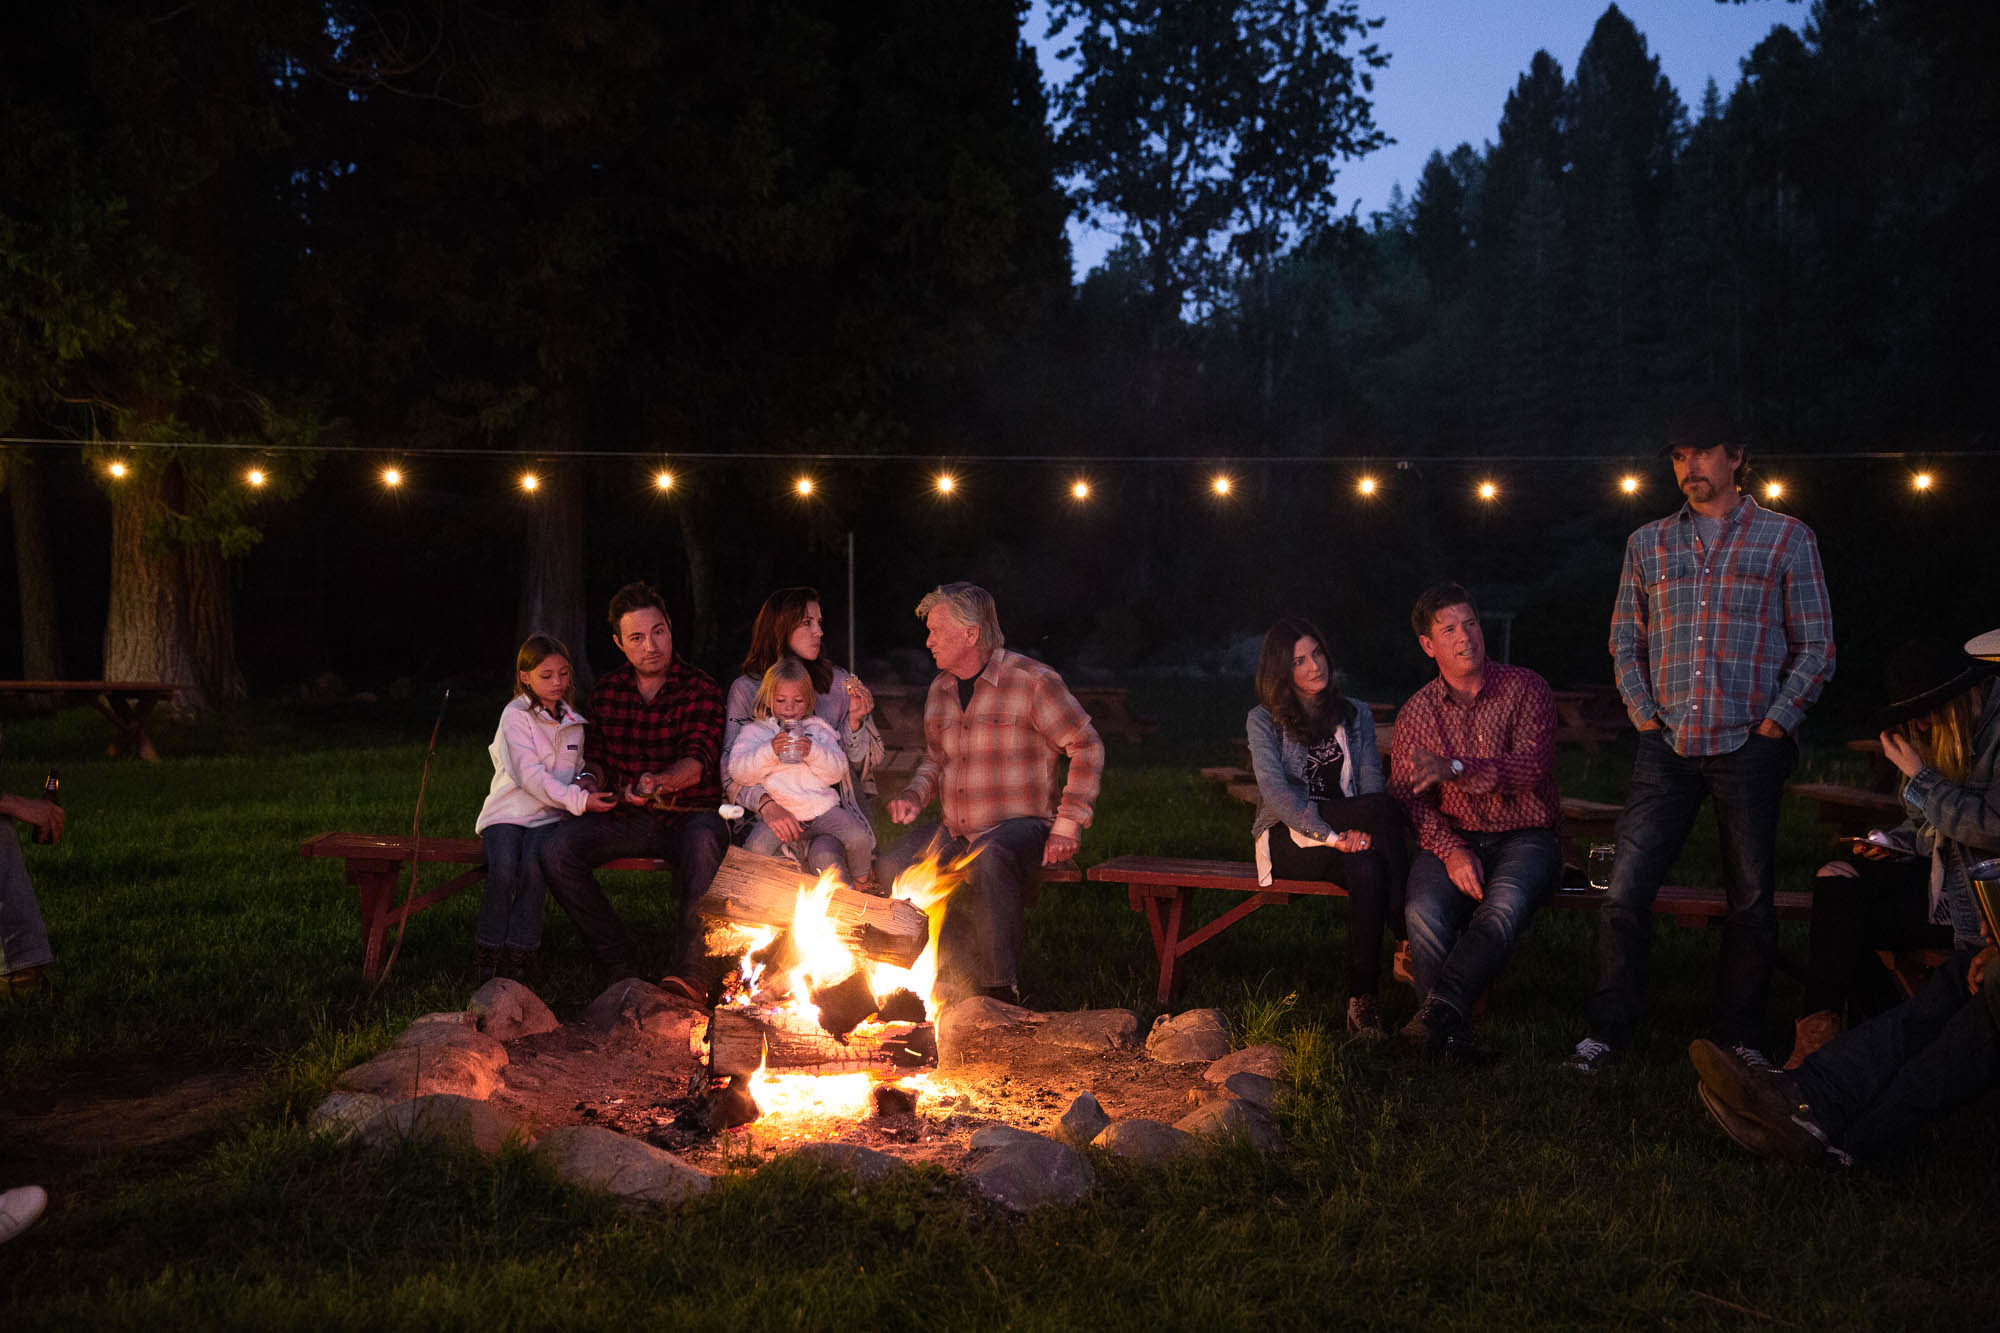 At Greenhorn Ranch we encourage guests to talk to each other instead of screens. S'mores around a campfire is a fun way to get a party started